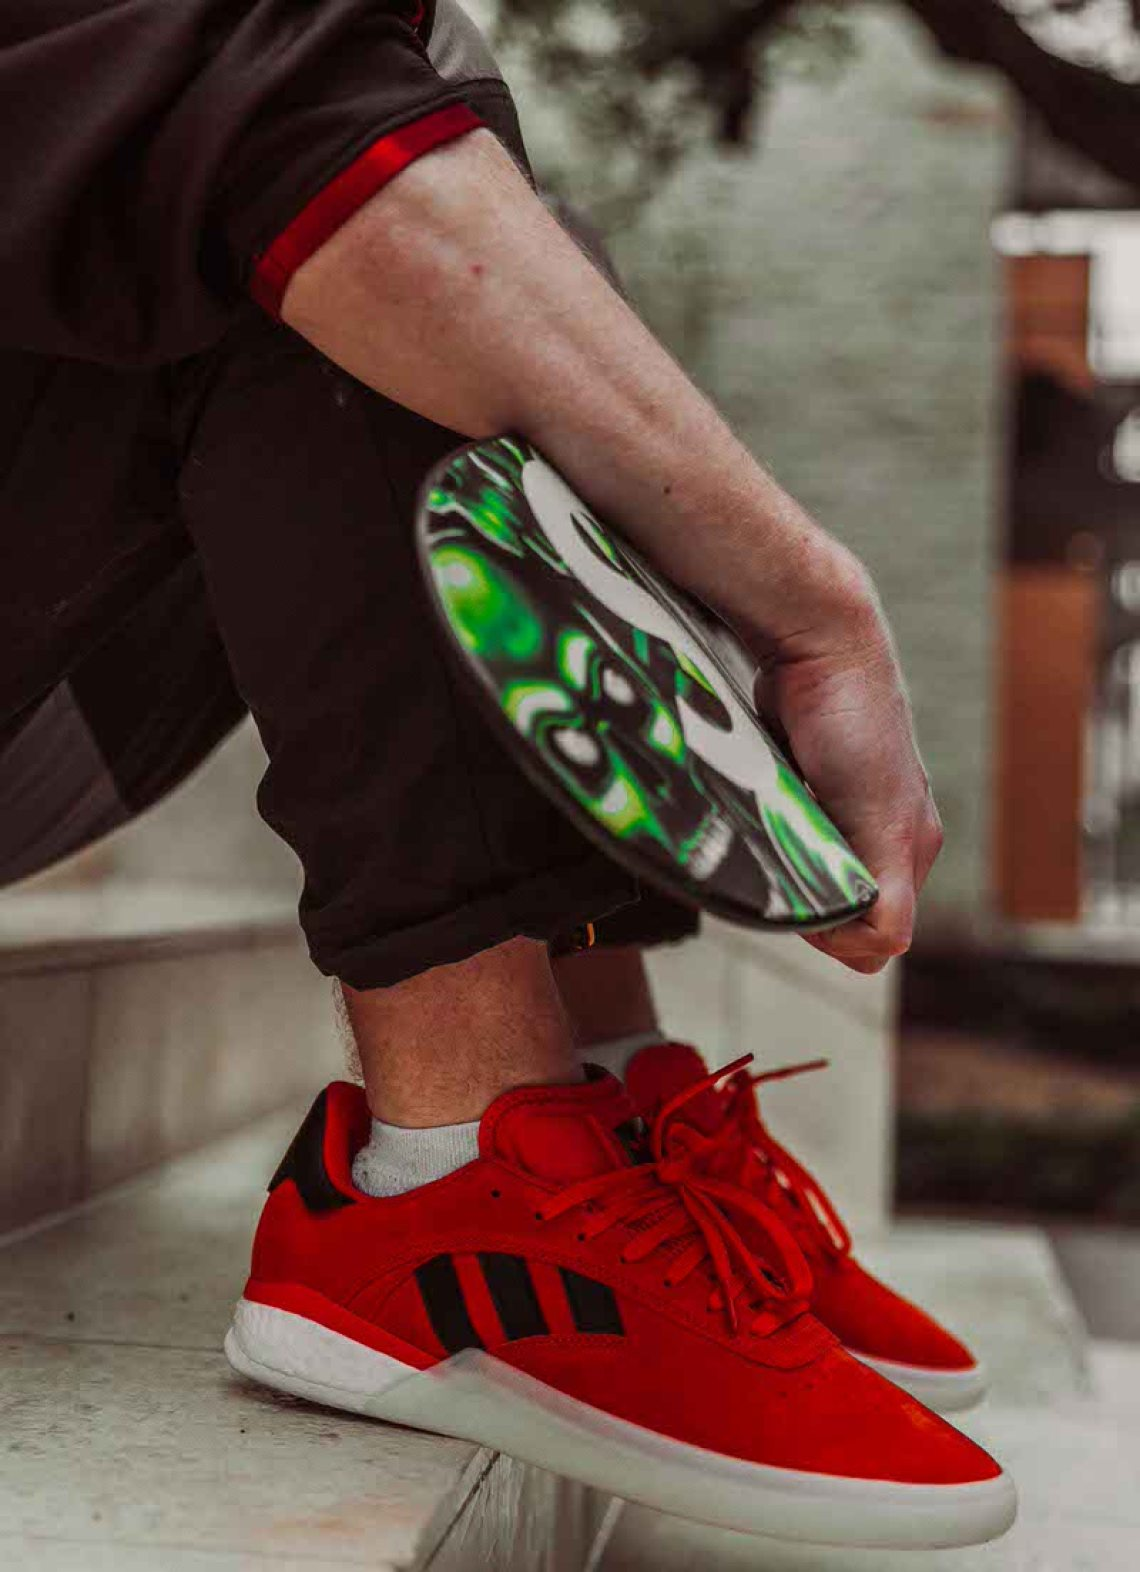 on sale c1560 52159 Check out the images below for an on-foot look at the Adidas Skateboarding  3ST.004.